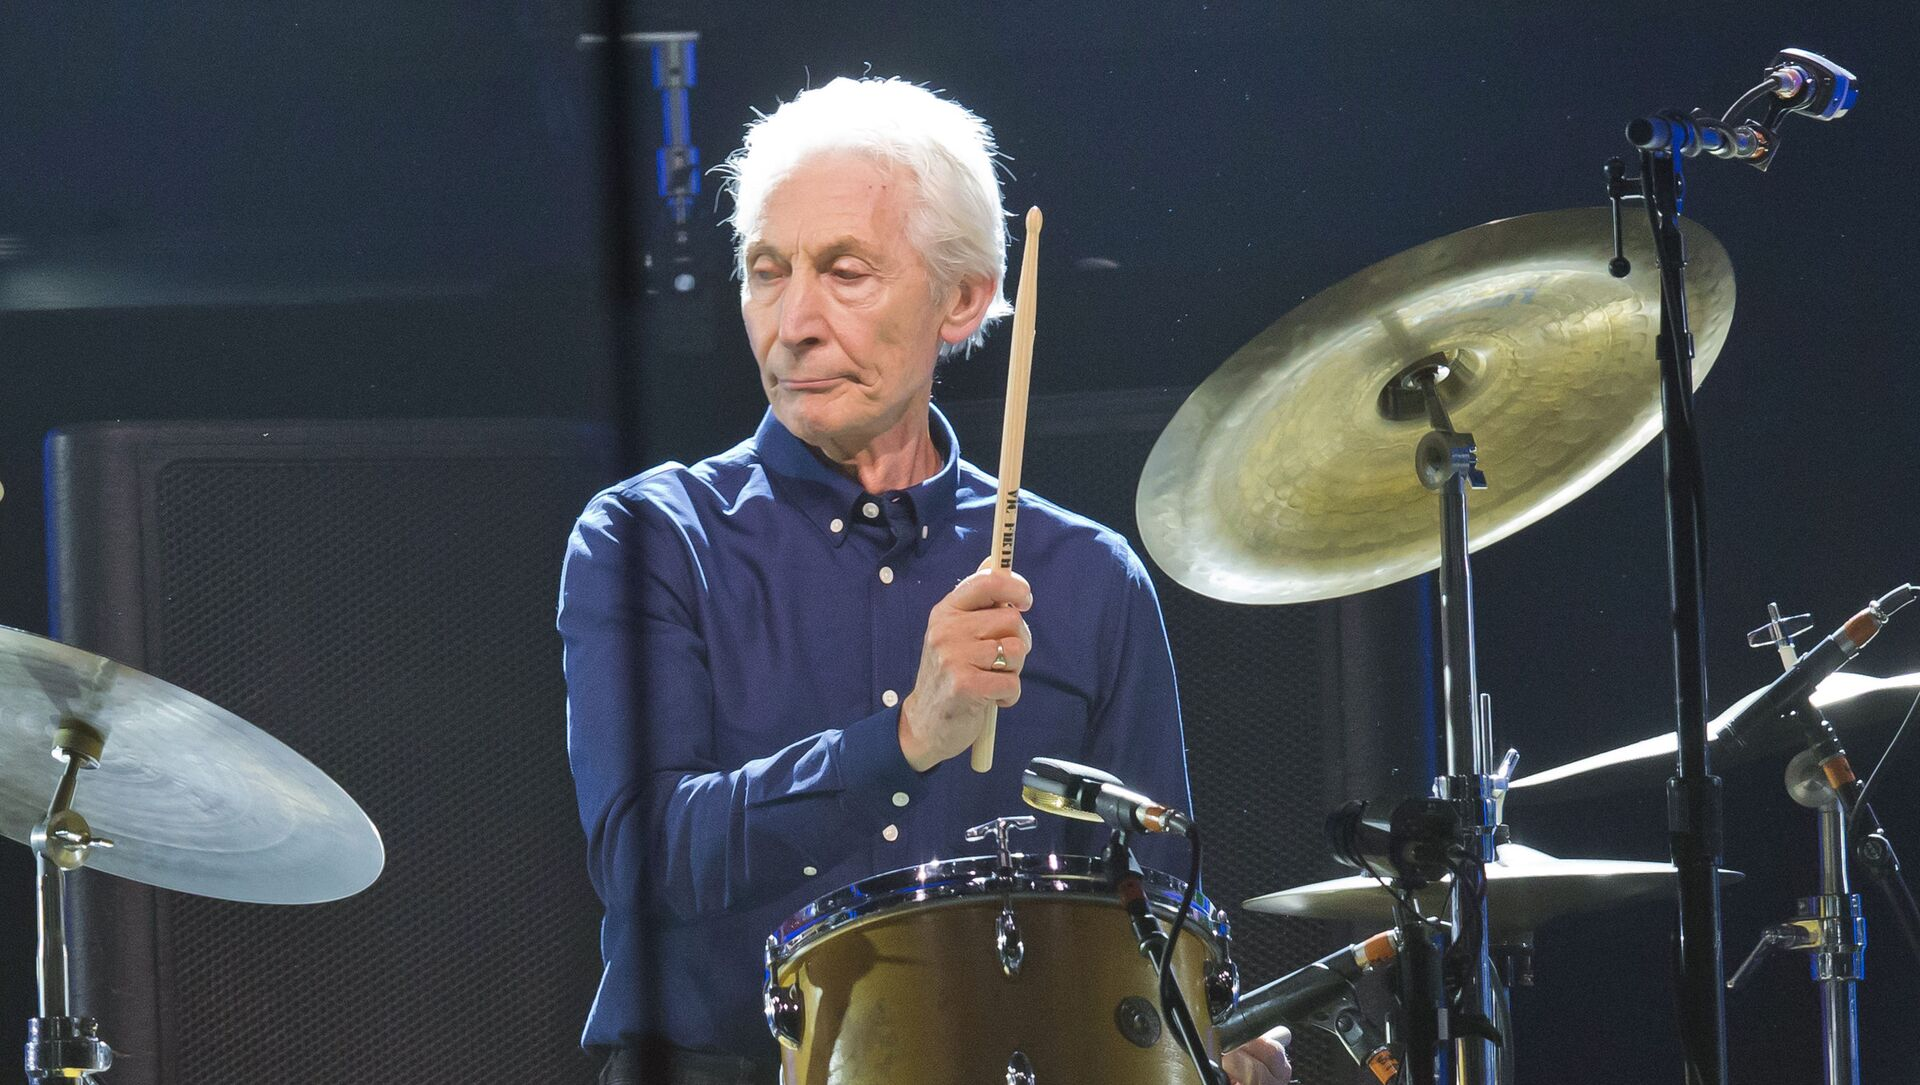 Charlie Watts, of the Rolling Stones, performs during a concert of the group's European No Filter Tour. - Sputnik International, 1920, 24.08.2021